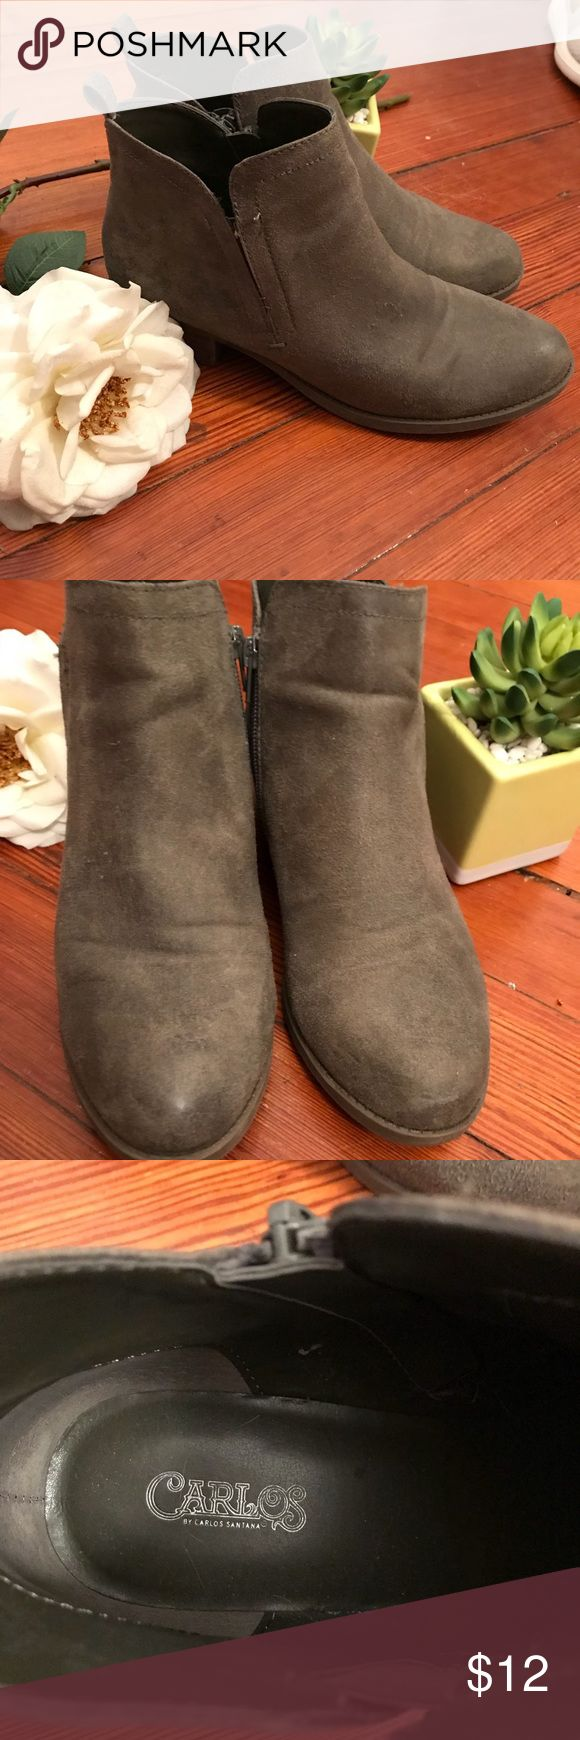 Carlos green booties Carlos green booties. Have been worn a couple times, overall good condition though! Make me an offer ☺️!!! Carlos Shoes Ankle Boots & Booties